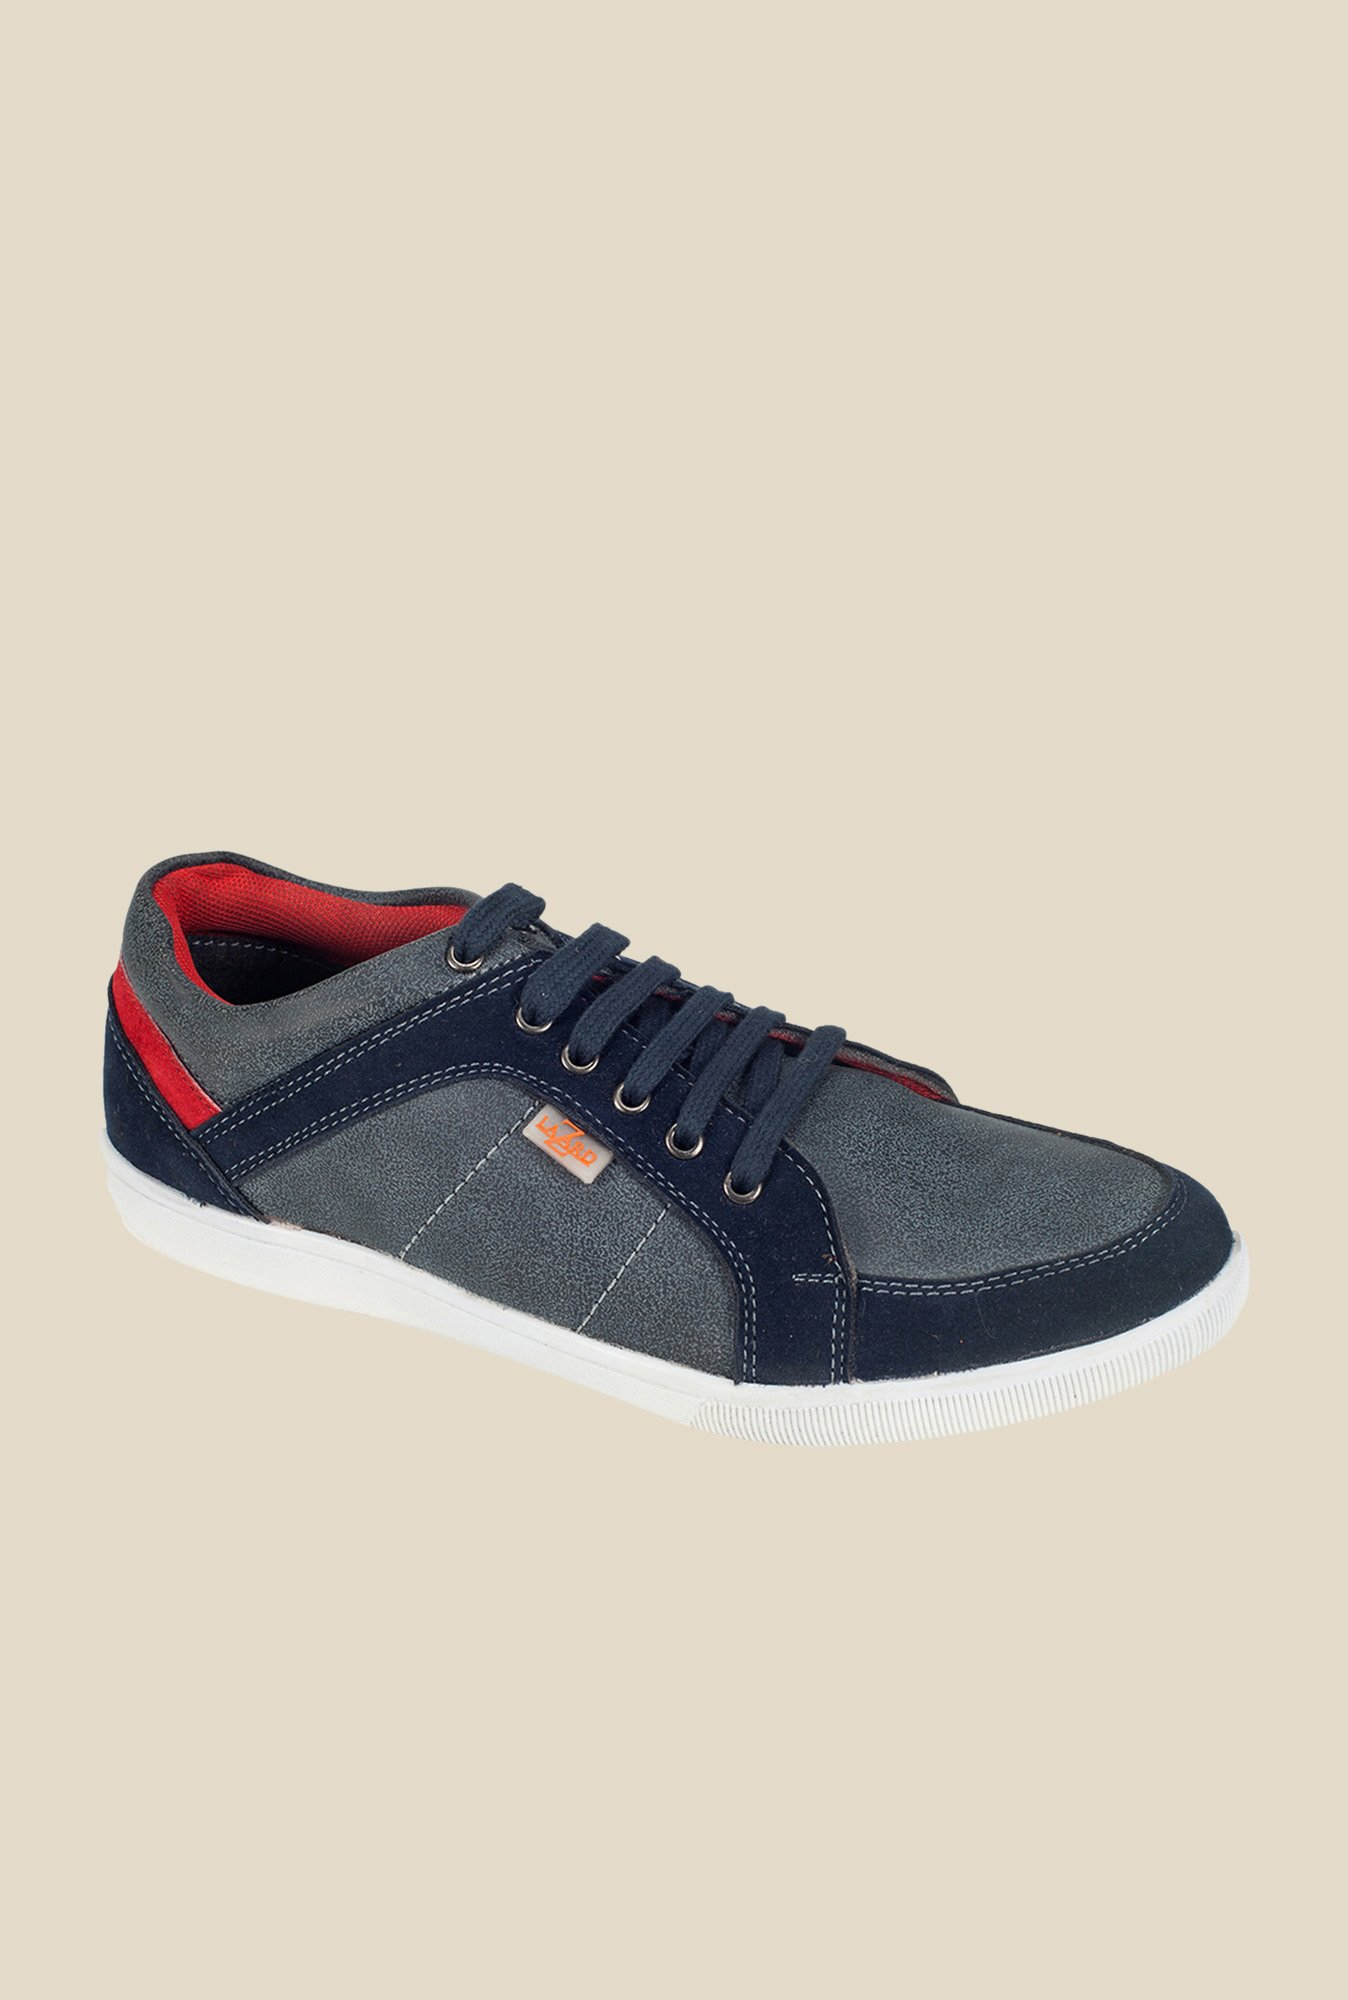 Khadim's Lazard Grey & Navy Running Shoes